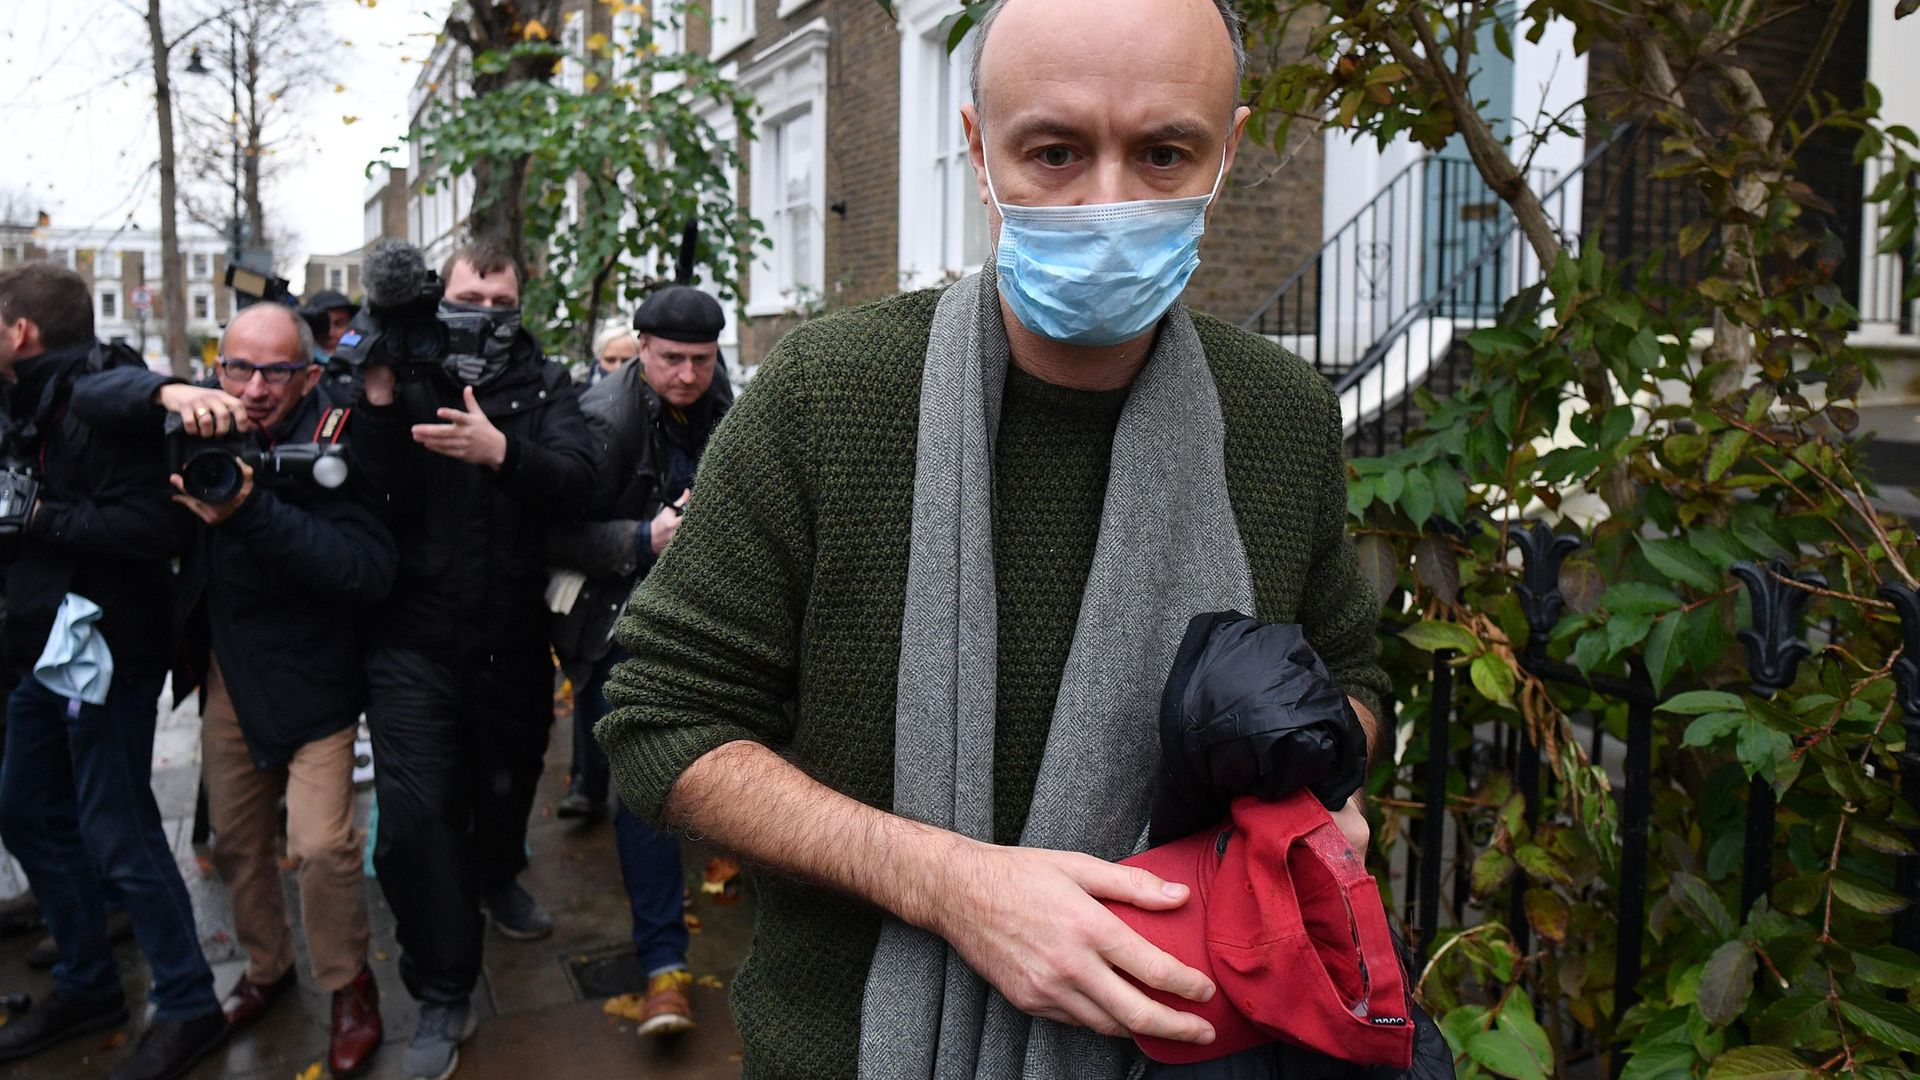 Dominic Cummings, previously Boris Johnson's most senior aide, leaving his residence in London - Credit: AFP via Getty Images